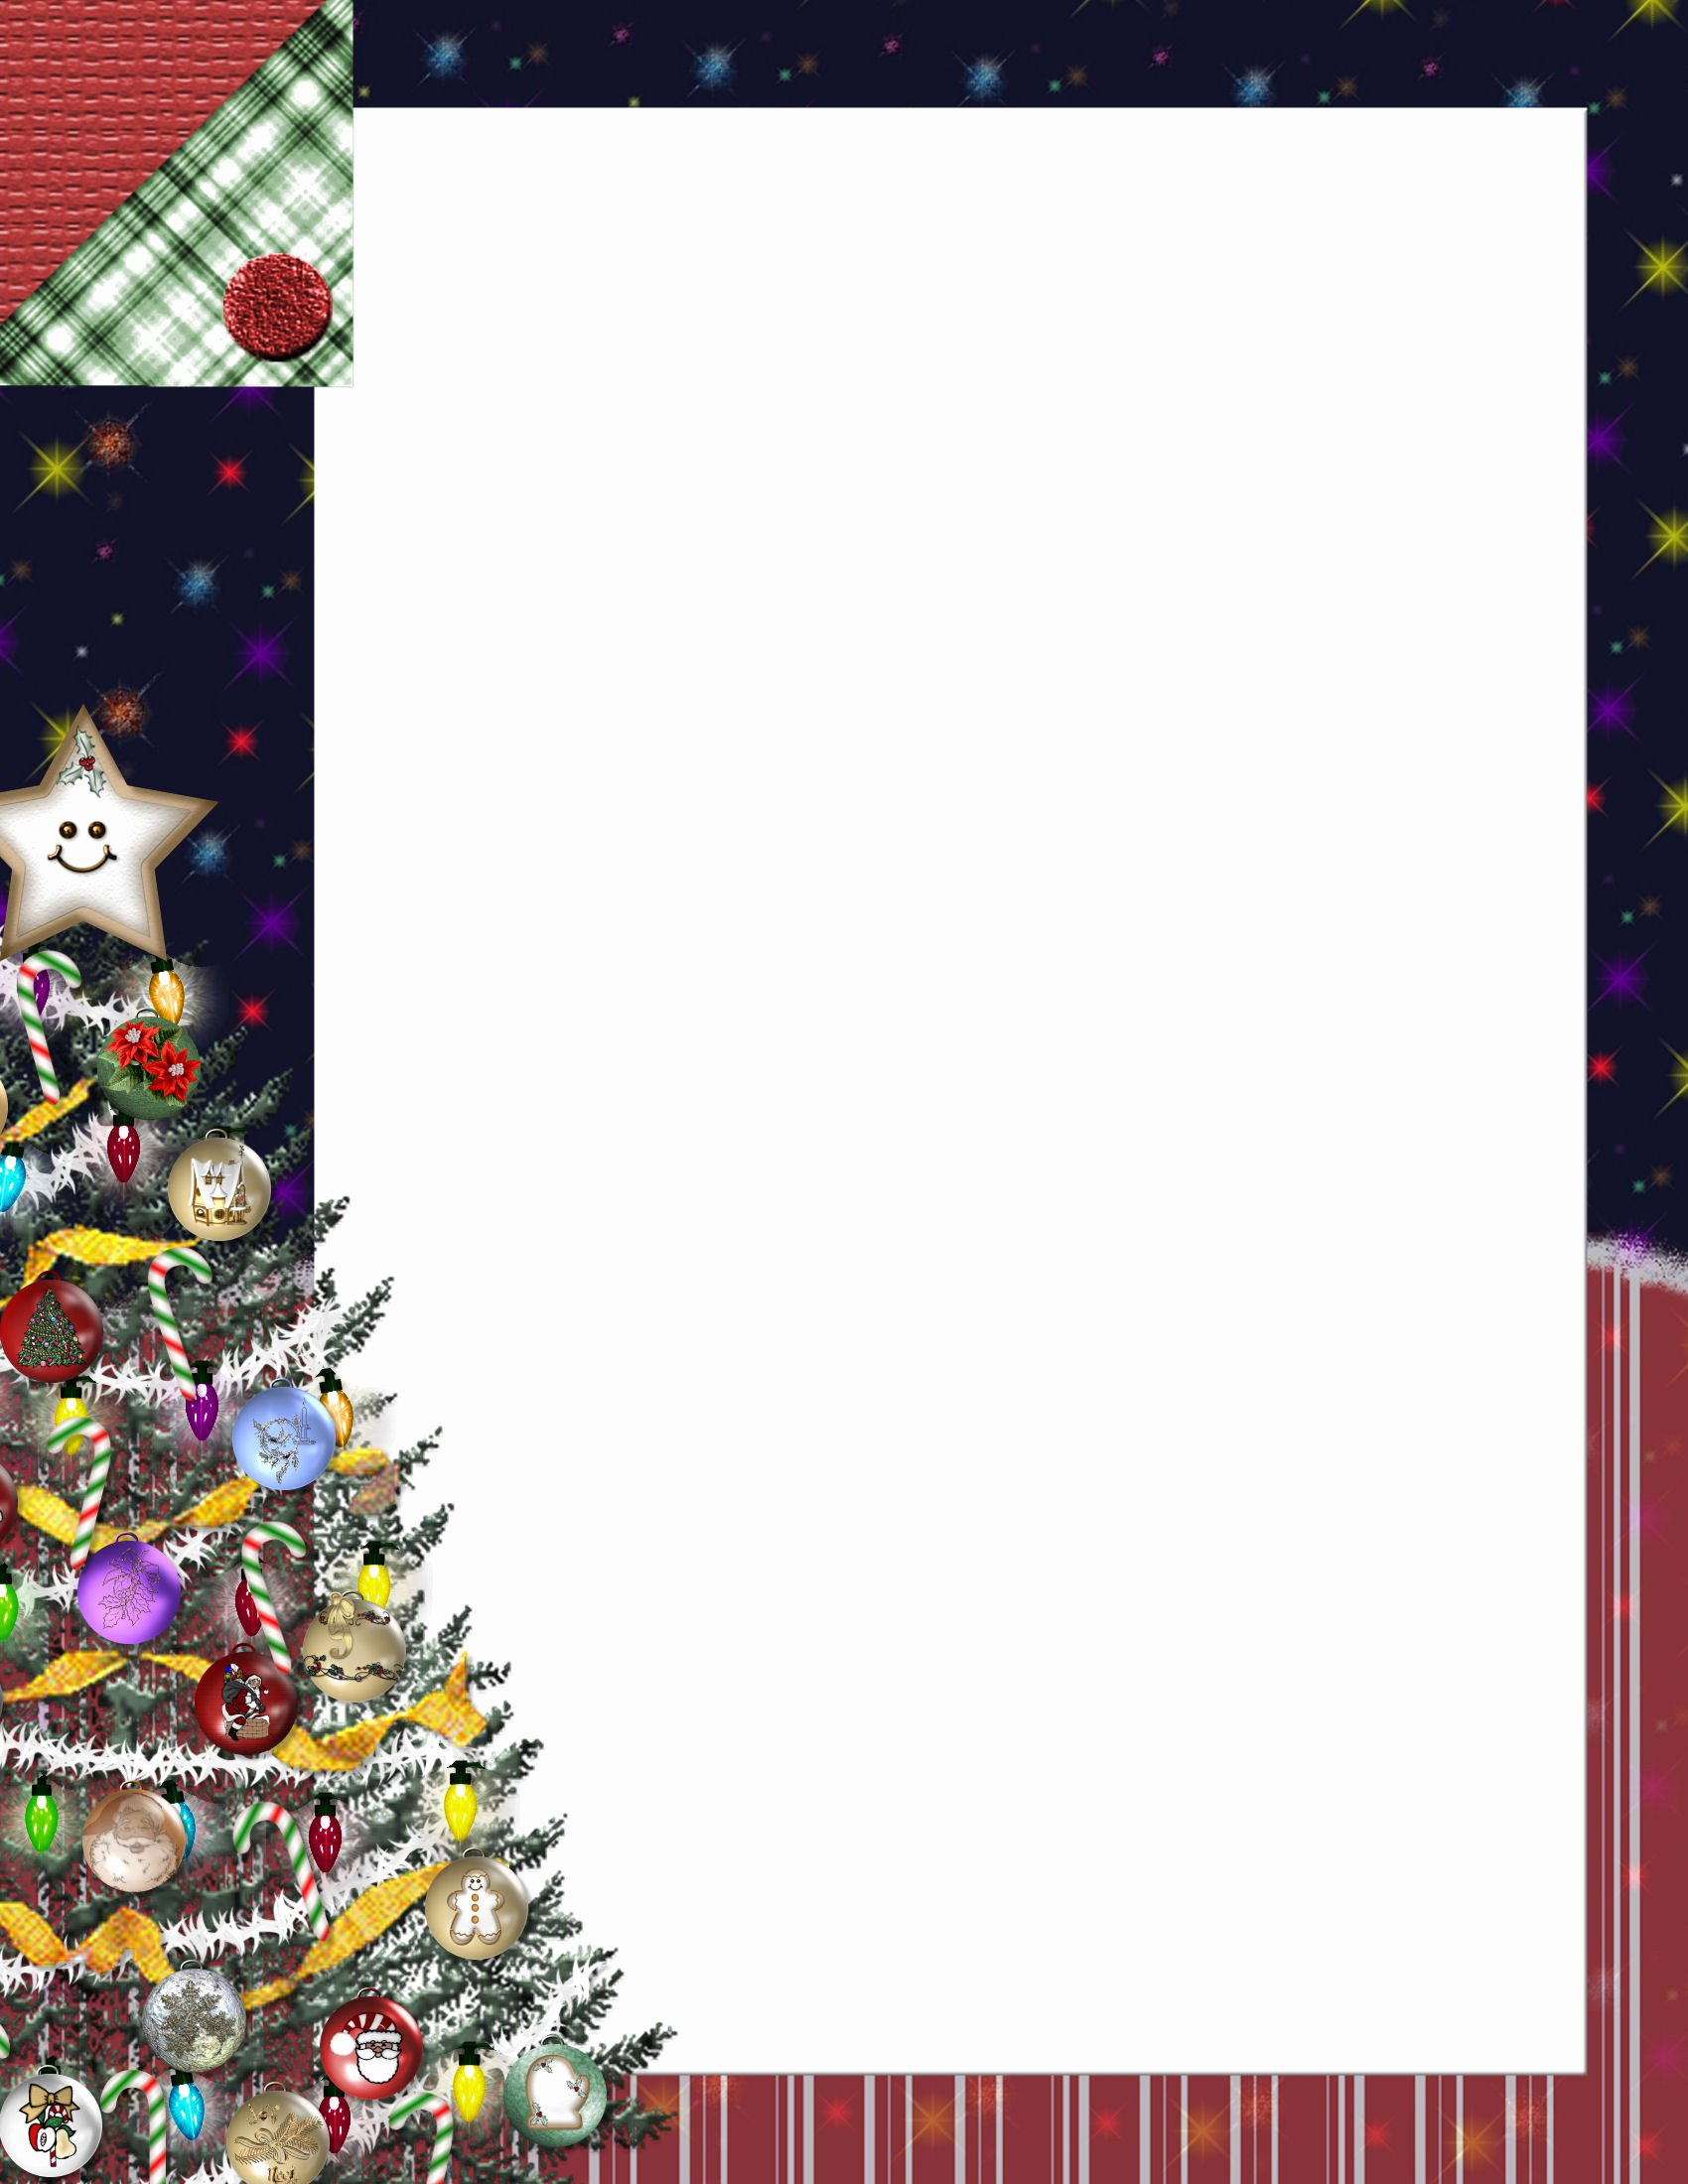 Word Christmas Letter Template New Christmas 1 Free Stationery Template Downloads